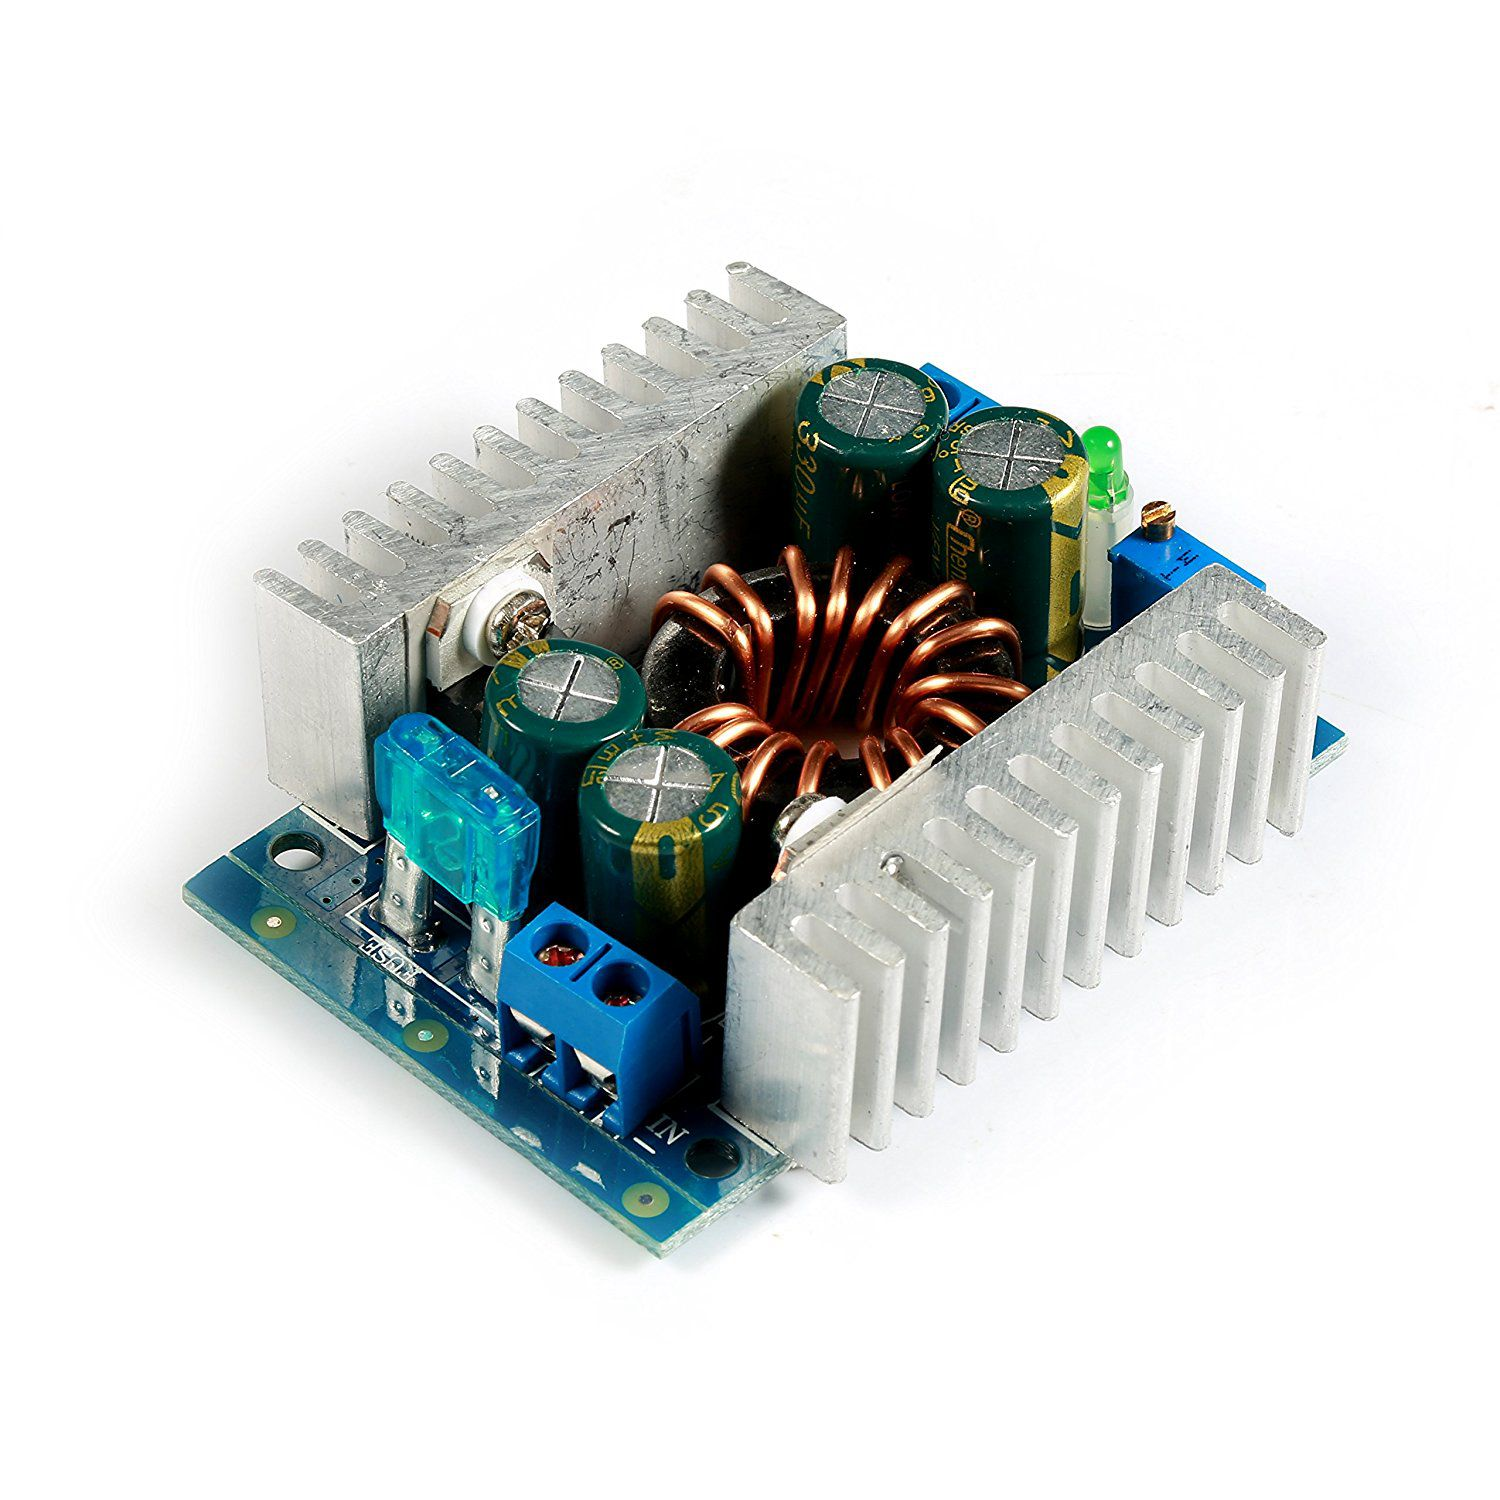 150W DC Boost Converter Power <font><b>Transformer</b></font> Module 8-<font><b>32V</b></font> to 9-46V 12/24V Step-up Volt Inverter Controller Stabilizer for Car Autom image